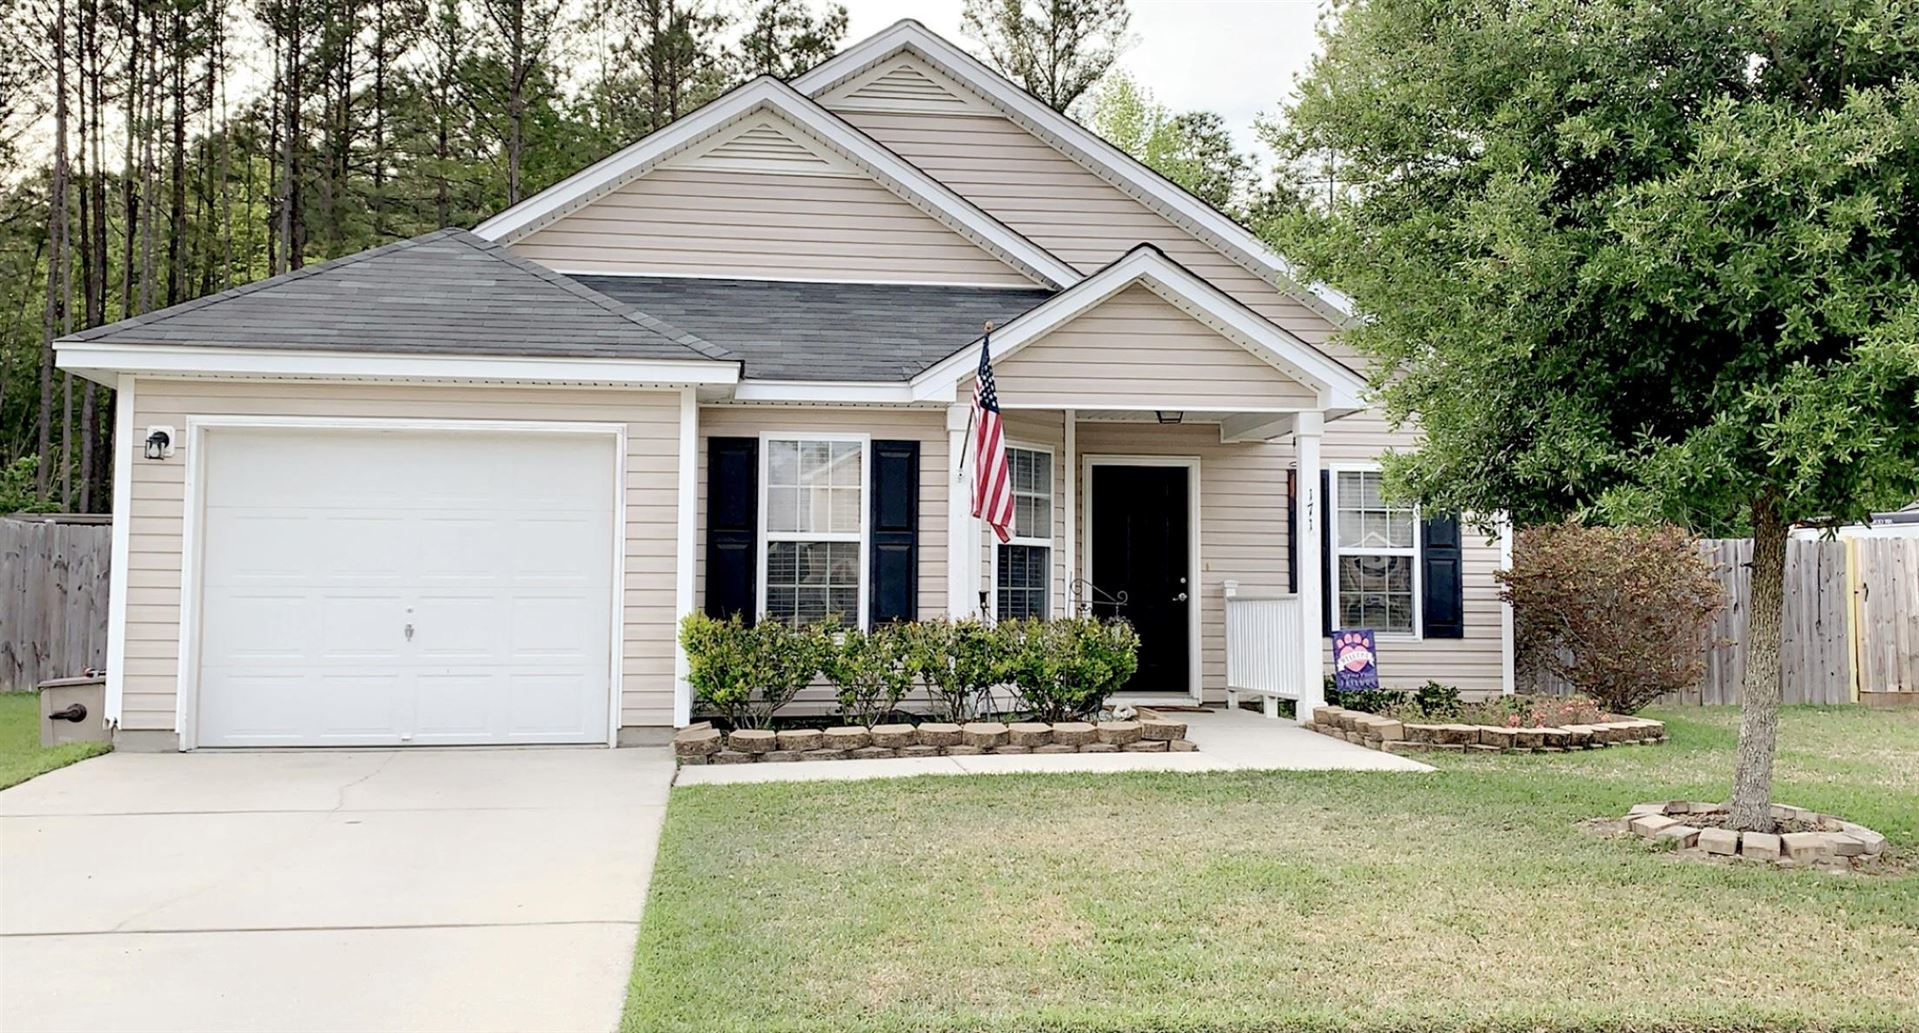 Photo of 171 Blackstone Drive, Moncks Corner, SC 29461 (MLS # 21010256)